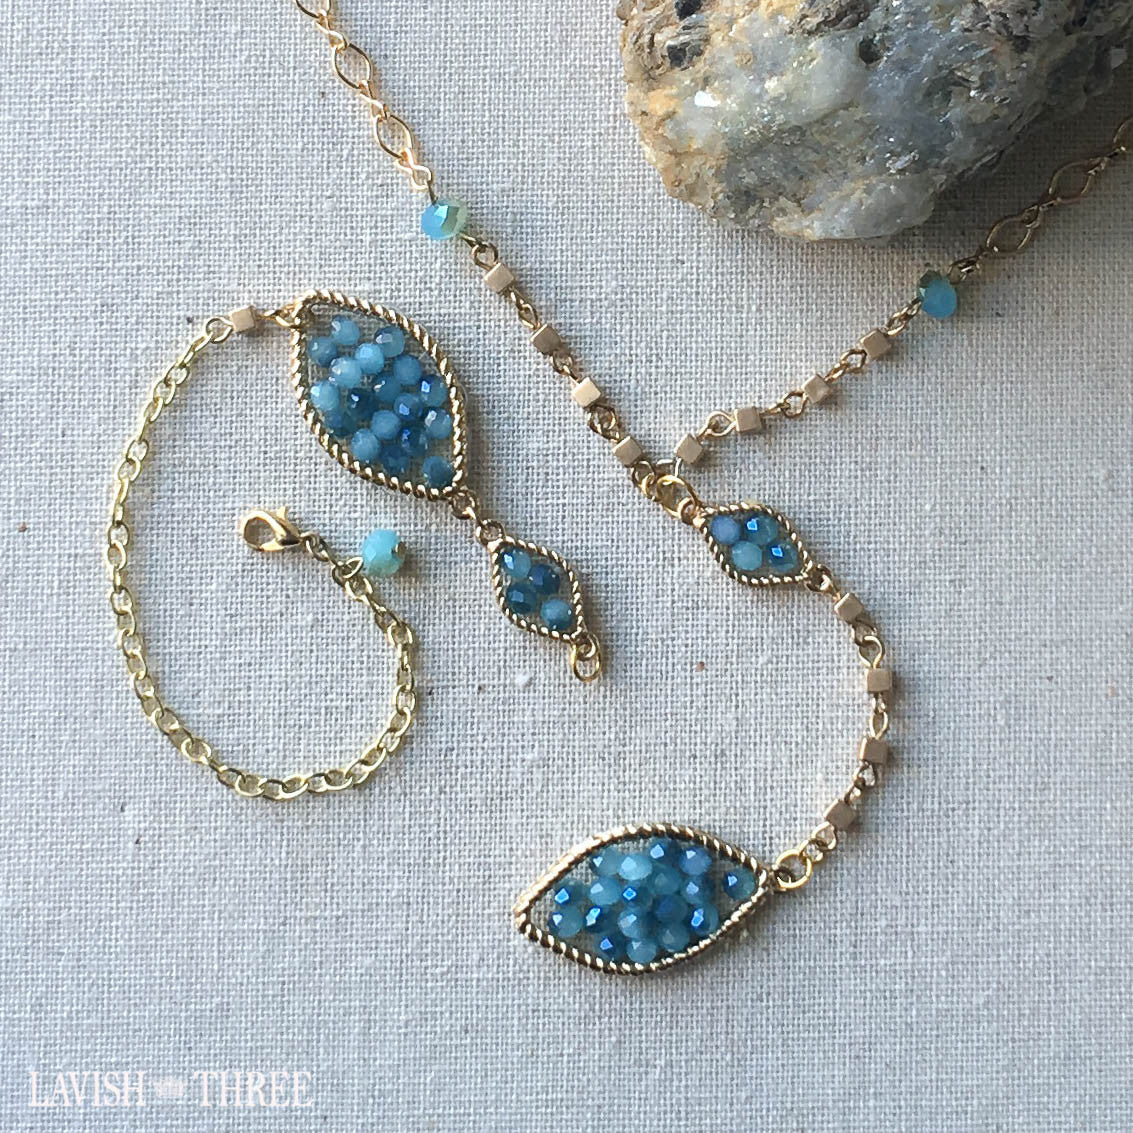 Gold necklace and bracelet set blue beaded pendant lavish three 3